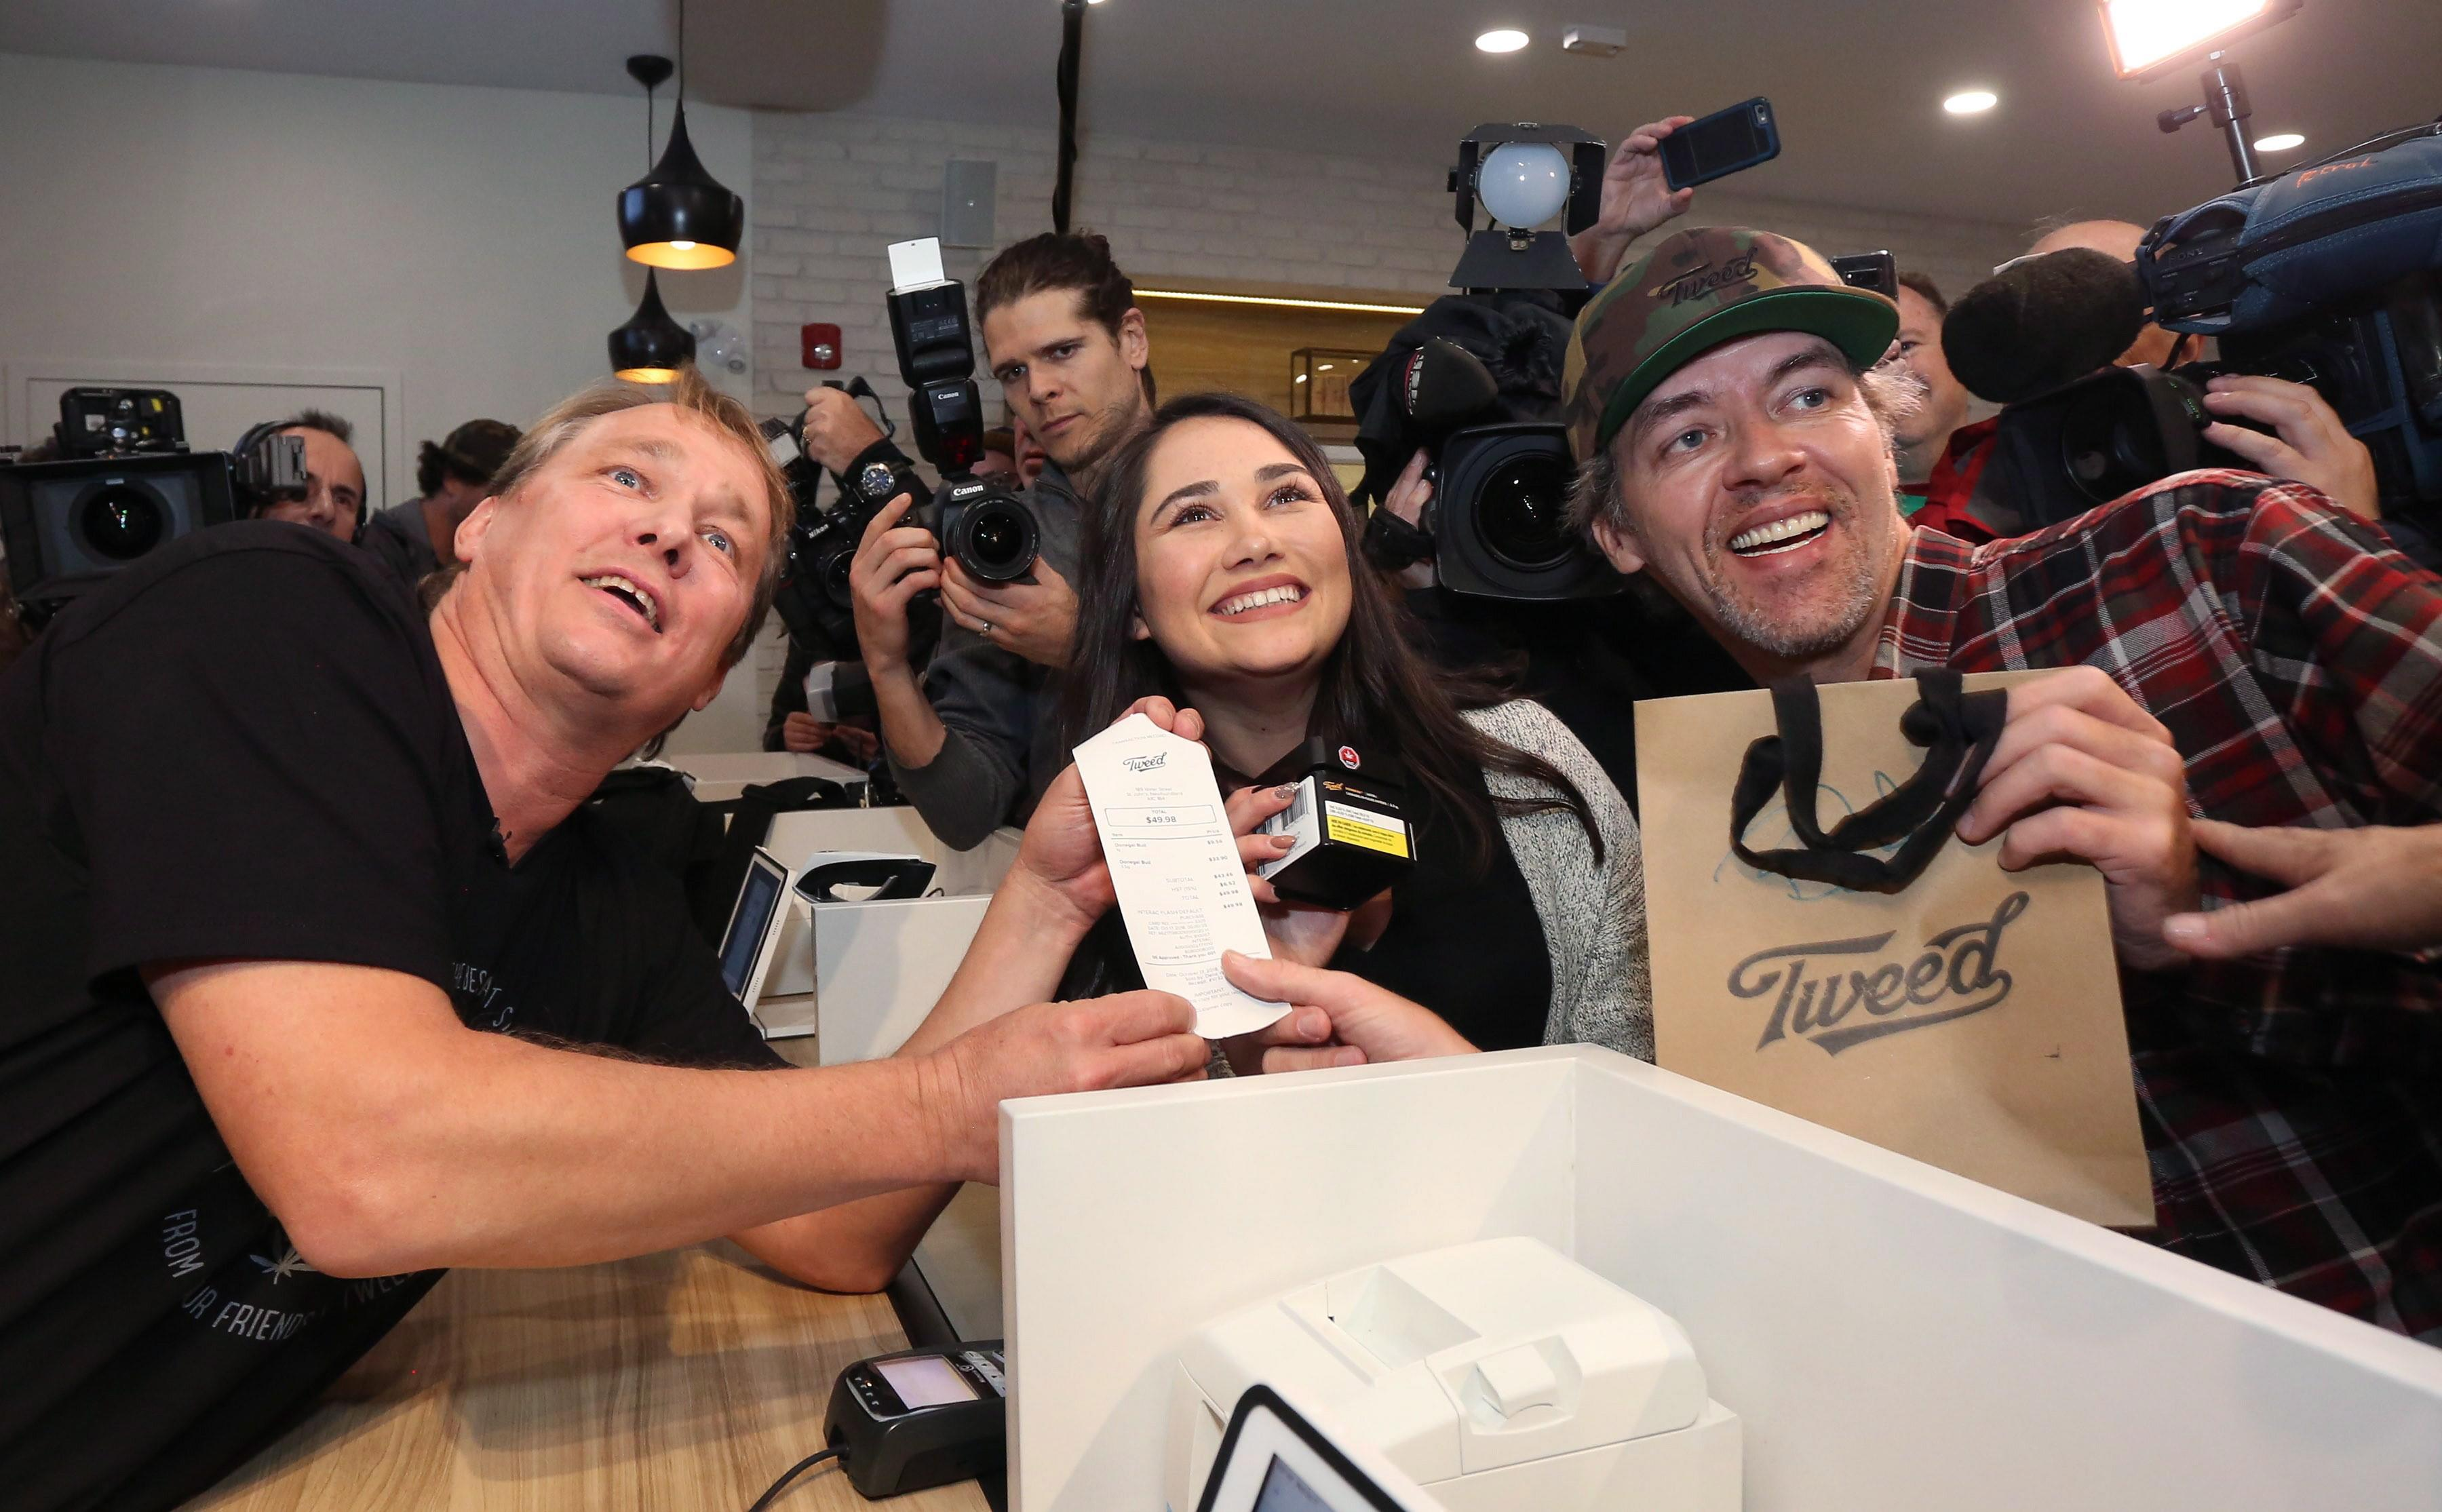 <p>Canopy Growth Corporation CEO Bruce Linton, left to right, poses with the receipt for the first legal cannabis for recreation use sold in Canada to Nikki Rose and Ian Power at the Tweed shop on Water Street in St. John's N.L. at 12:01 am NDT on Wednesday October 17, 2018.<br>(Photo from Paul Daly, The Canadian Press) </p>